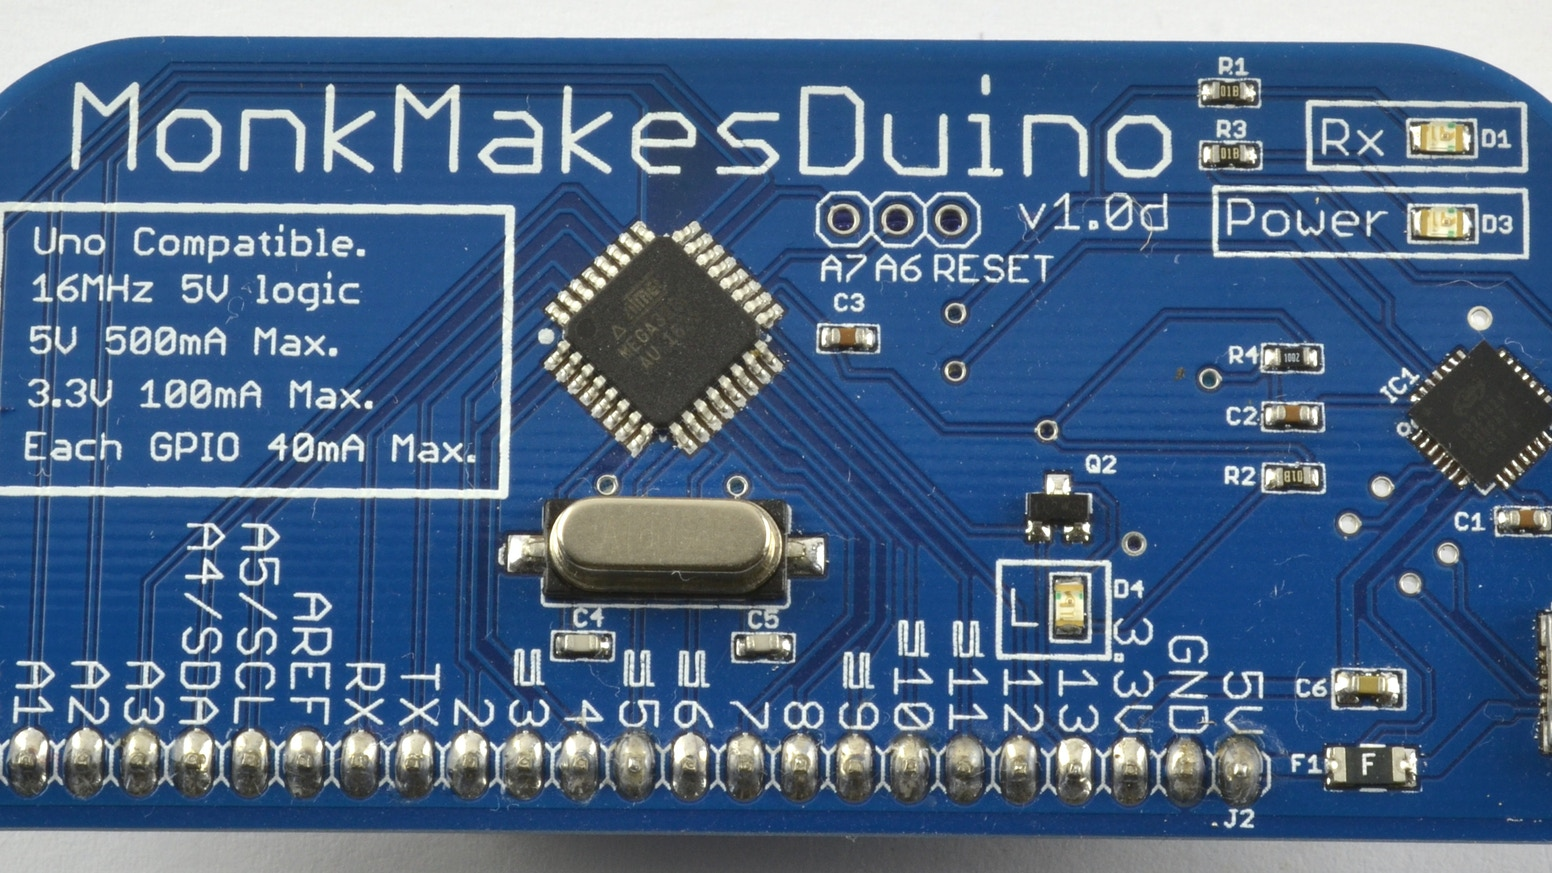 Monkmakesduino By Simon Monk For Monkmakes Ltd Updates Kickstarter Beginner Electronic Circuits A Friendly Arduino Uno Compatible Board Designed Use With Solderless Breadboard Having Single Row Of Pins